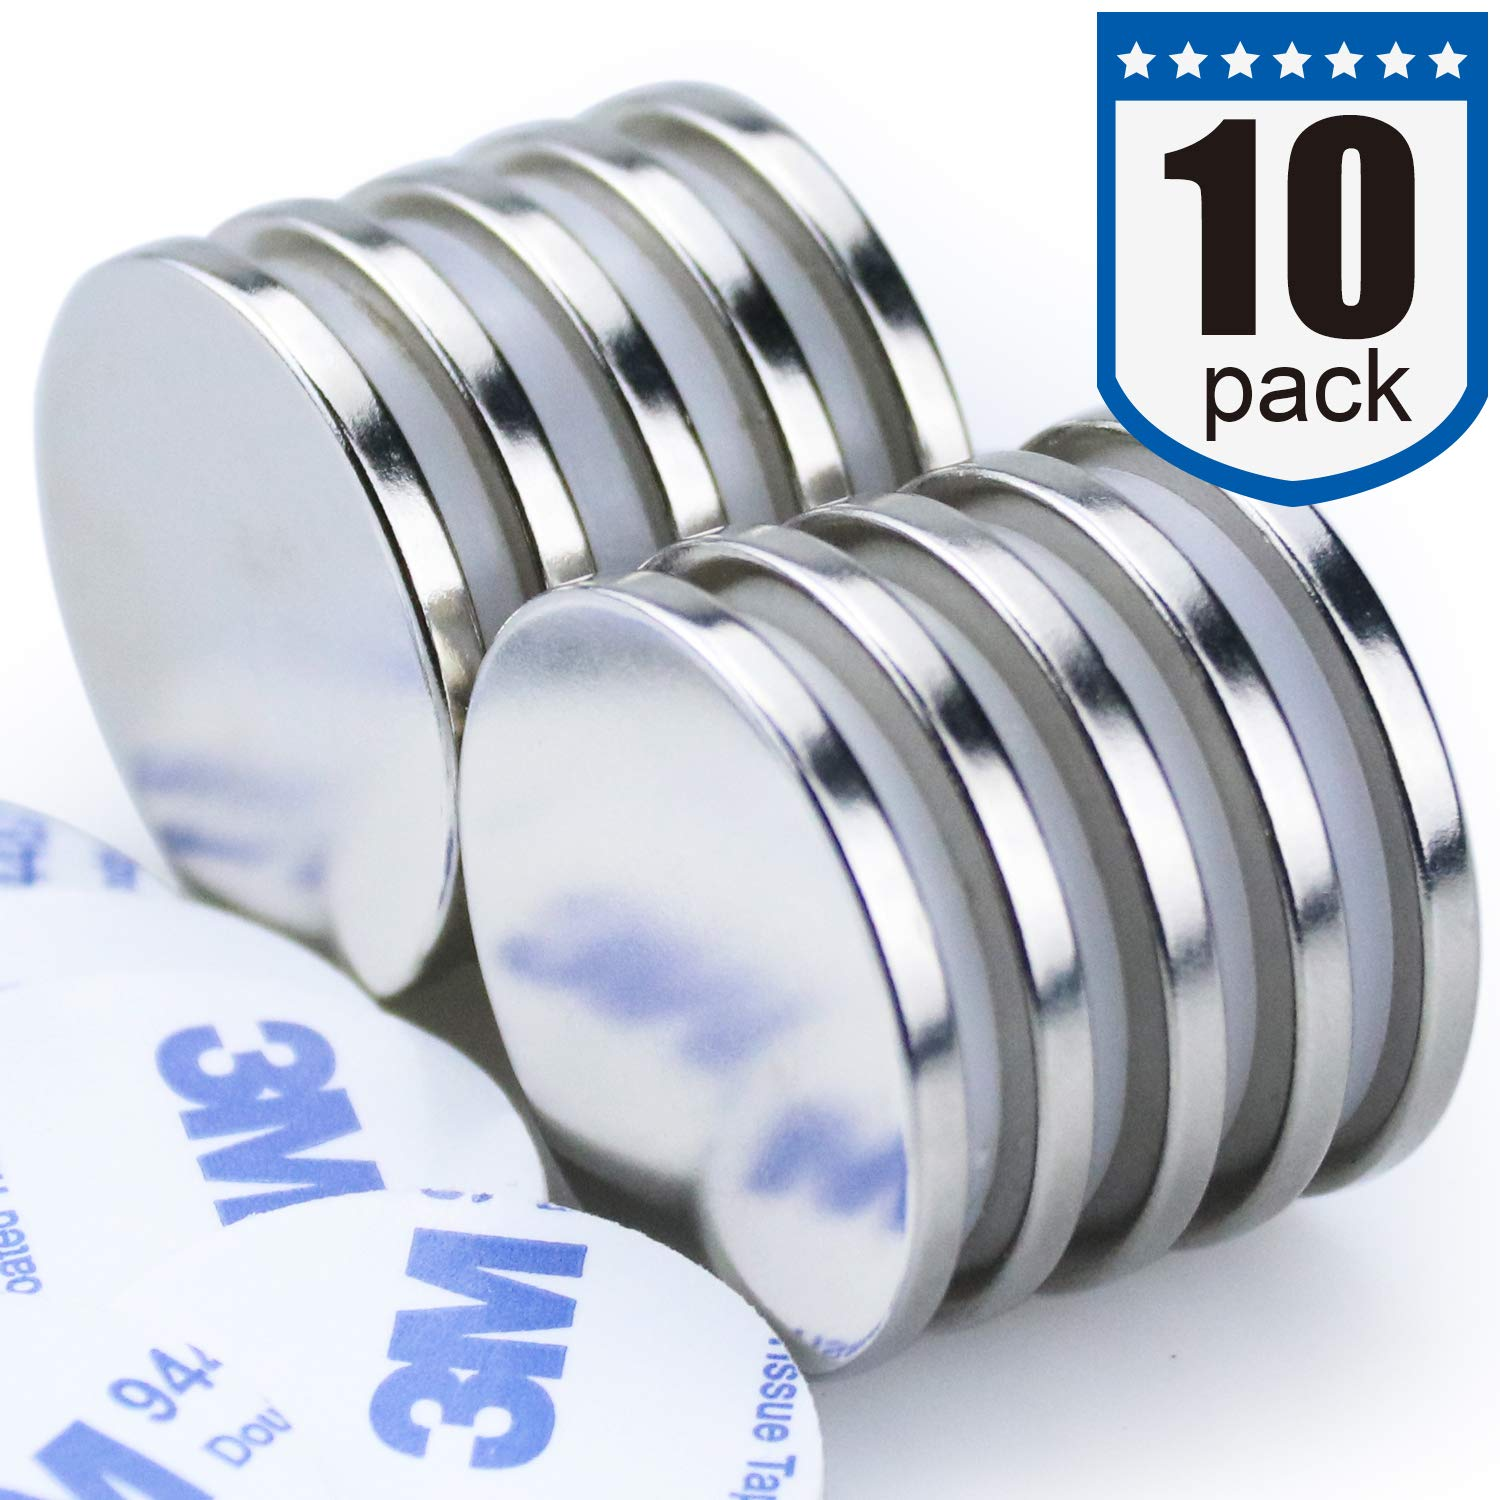 DIYMAG Powerful N52 Neodymium Disc Magnets, Strong, Permanent, Rare Earth Magnets. Fridge, DIY, Building, Scientific, Craft, and Office Magnets - 1.26 inch x 1/8 inch, Pack of 10